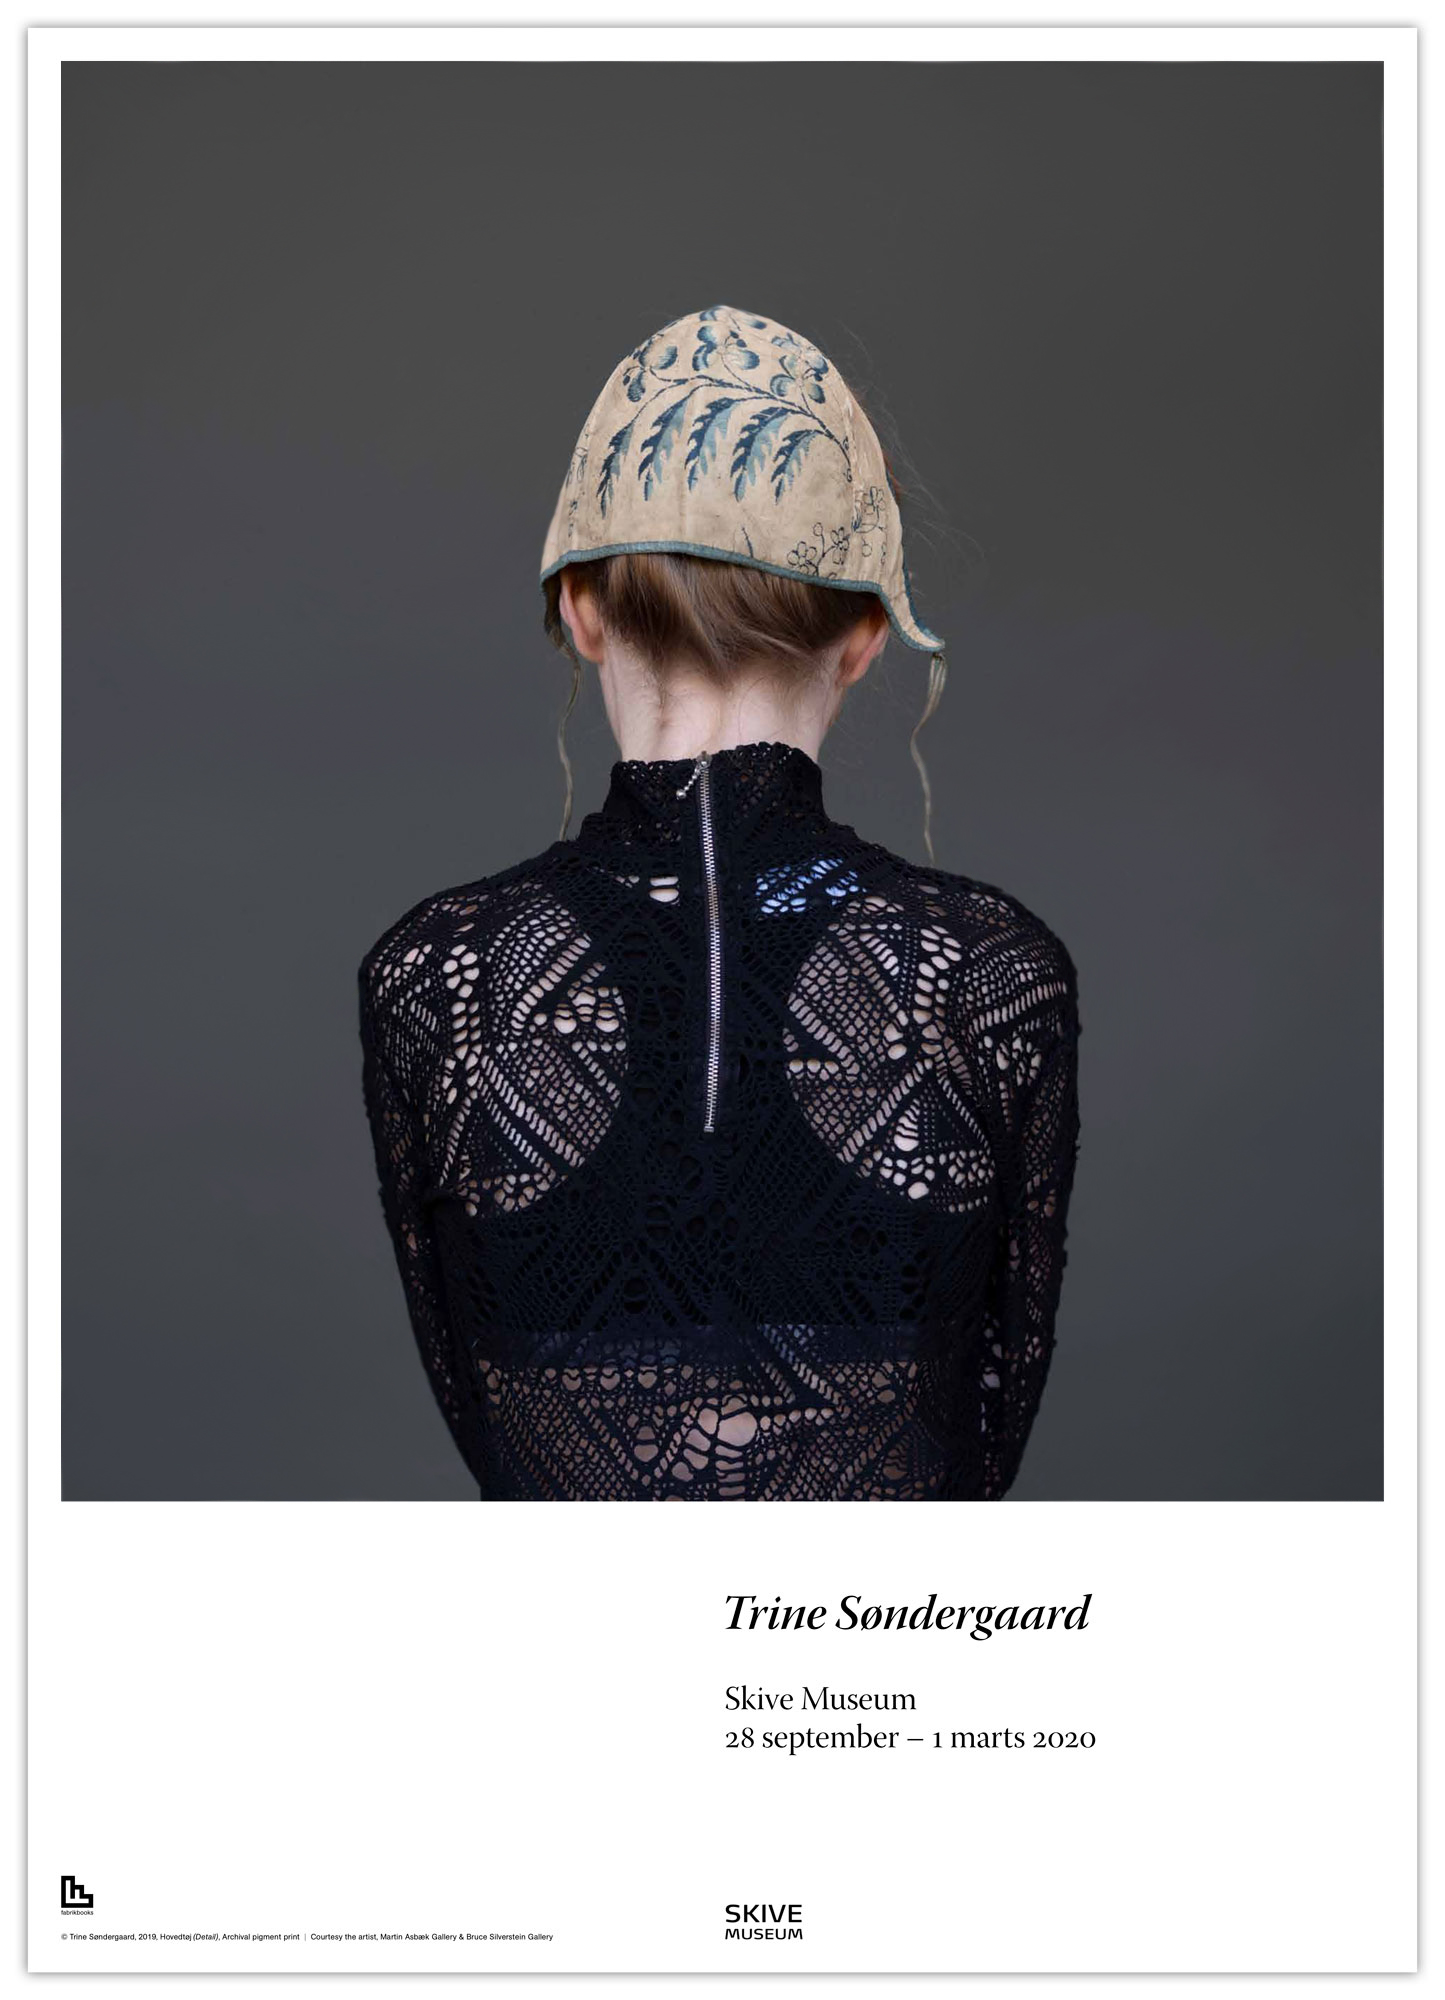 Exhibition poster titled Hovedtøj with photographic art by artist Trine Søndergaard from skive kunstmuseum